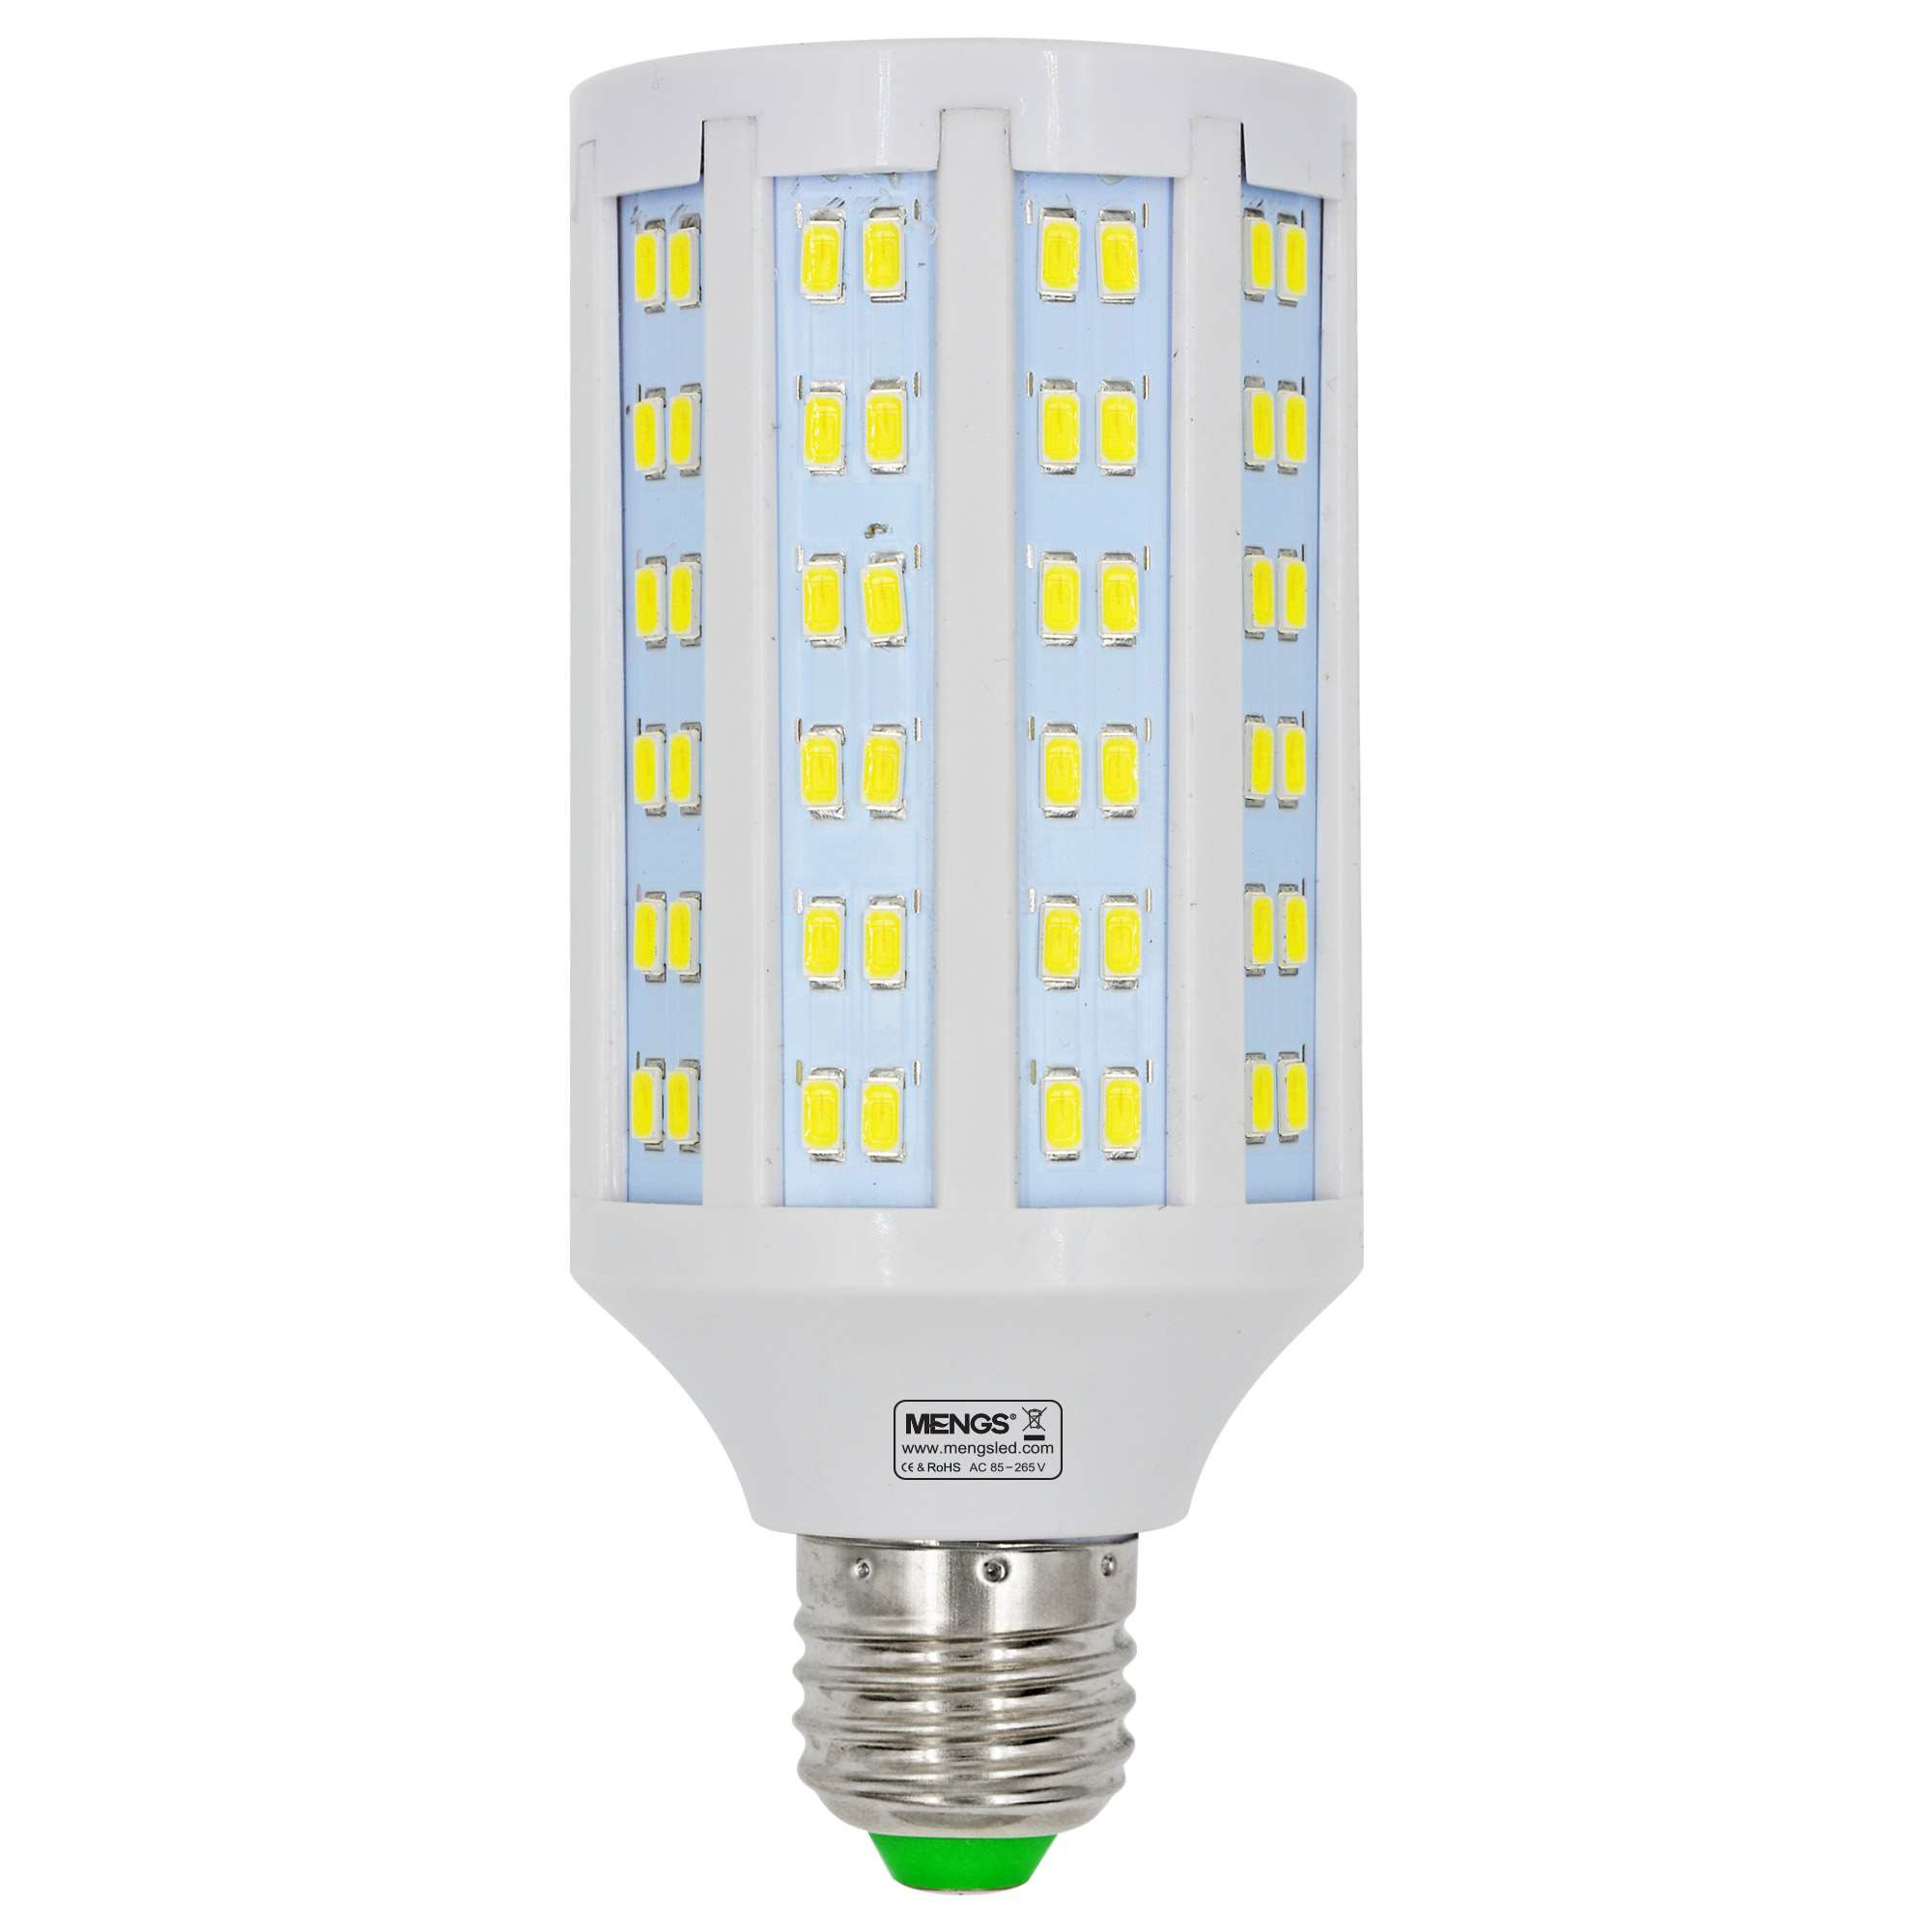 MENGS® E27 20W  LED Corn Light 144x 5730 SMD LED Bulb Lamp AC 85-265V in Cool White Energy-Saving Light